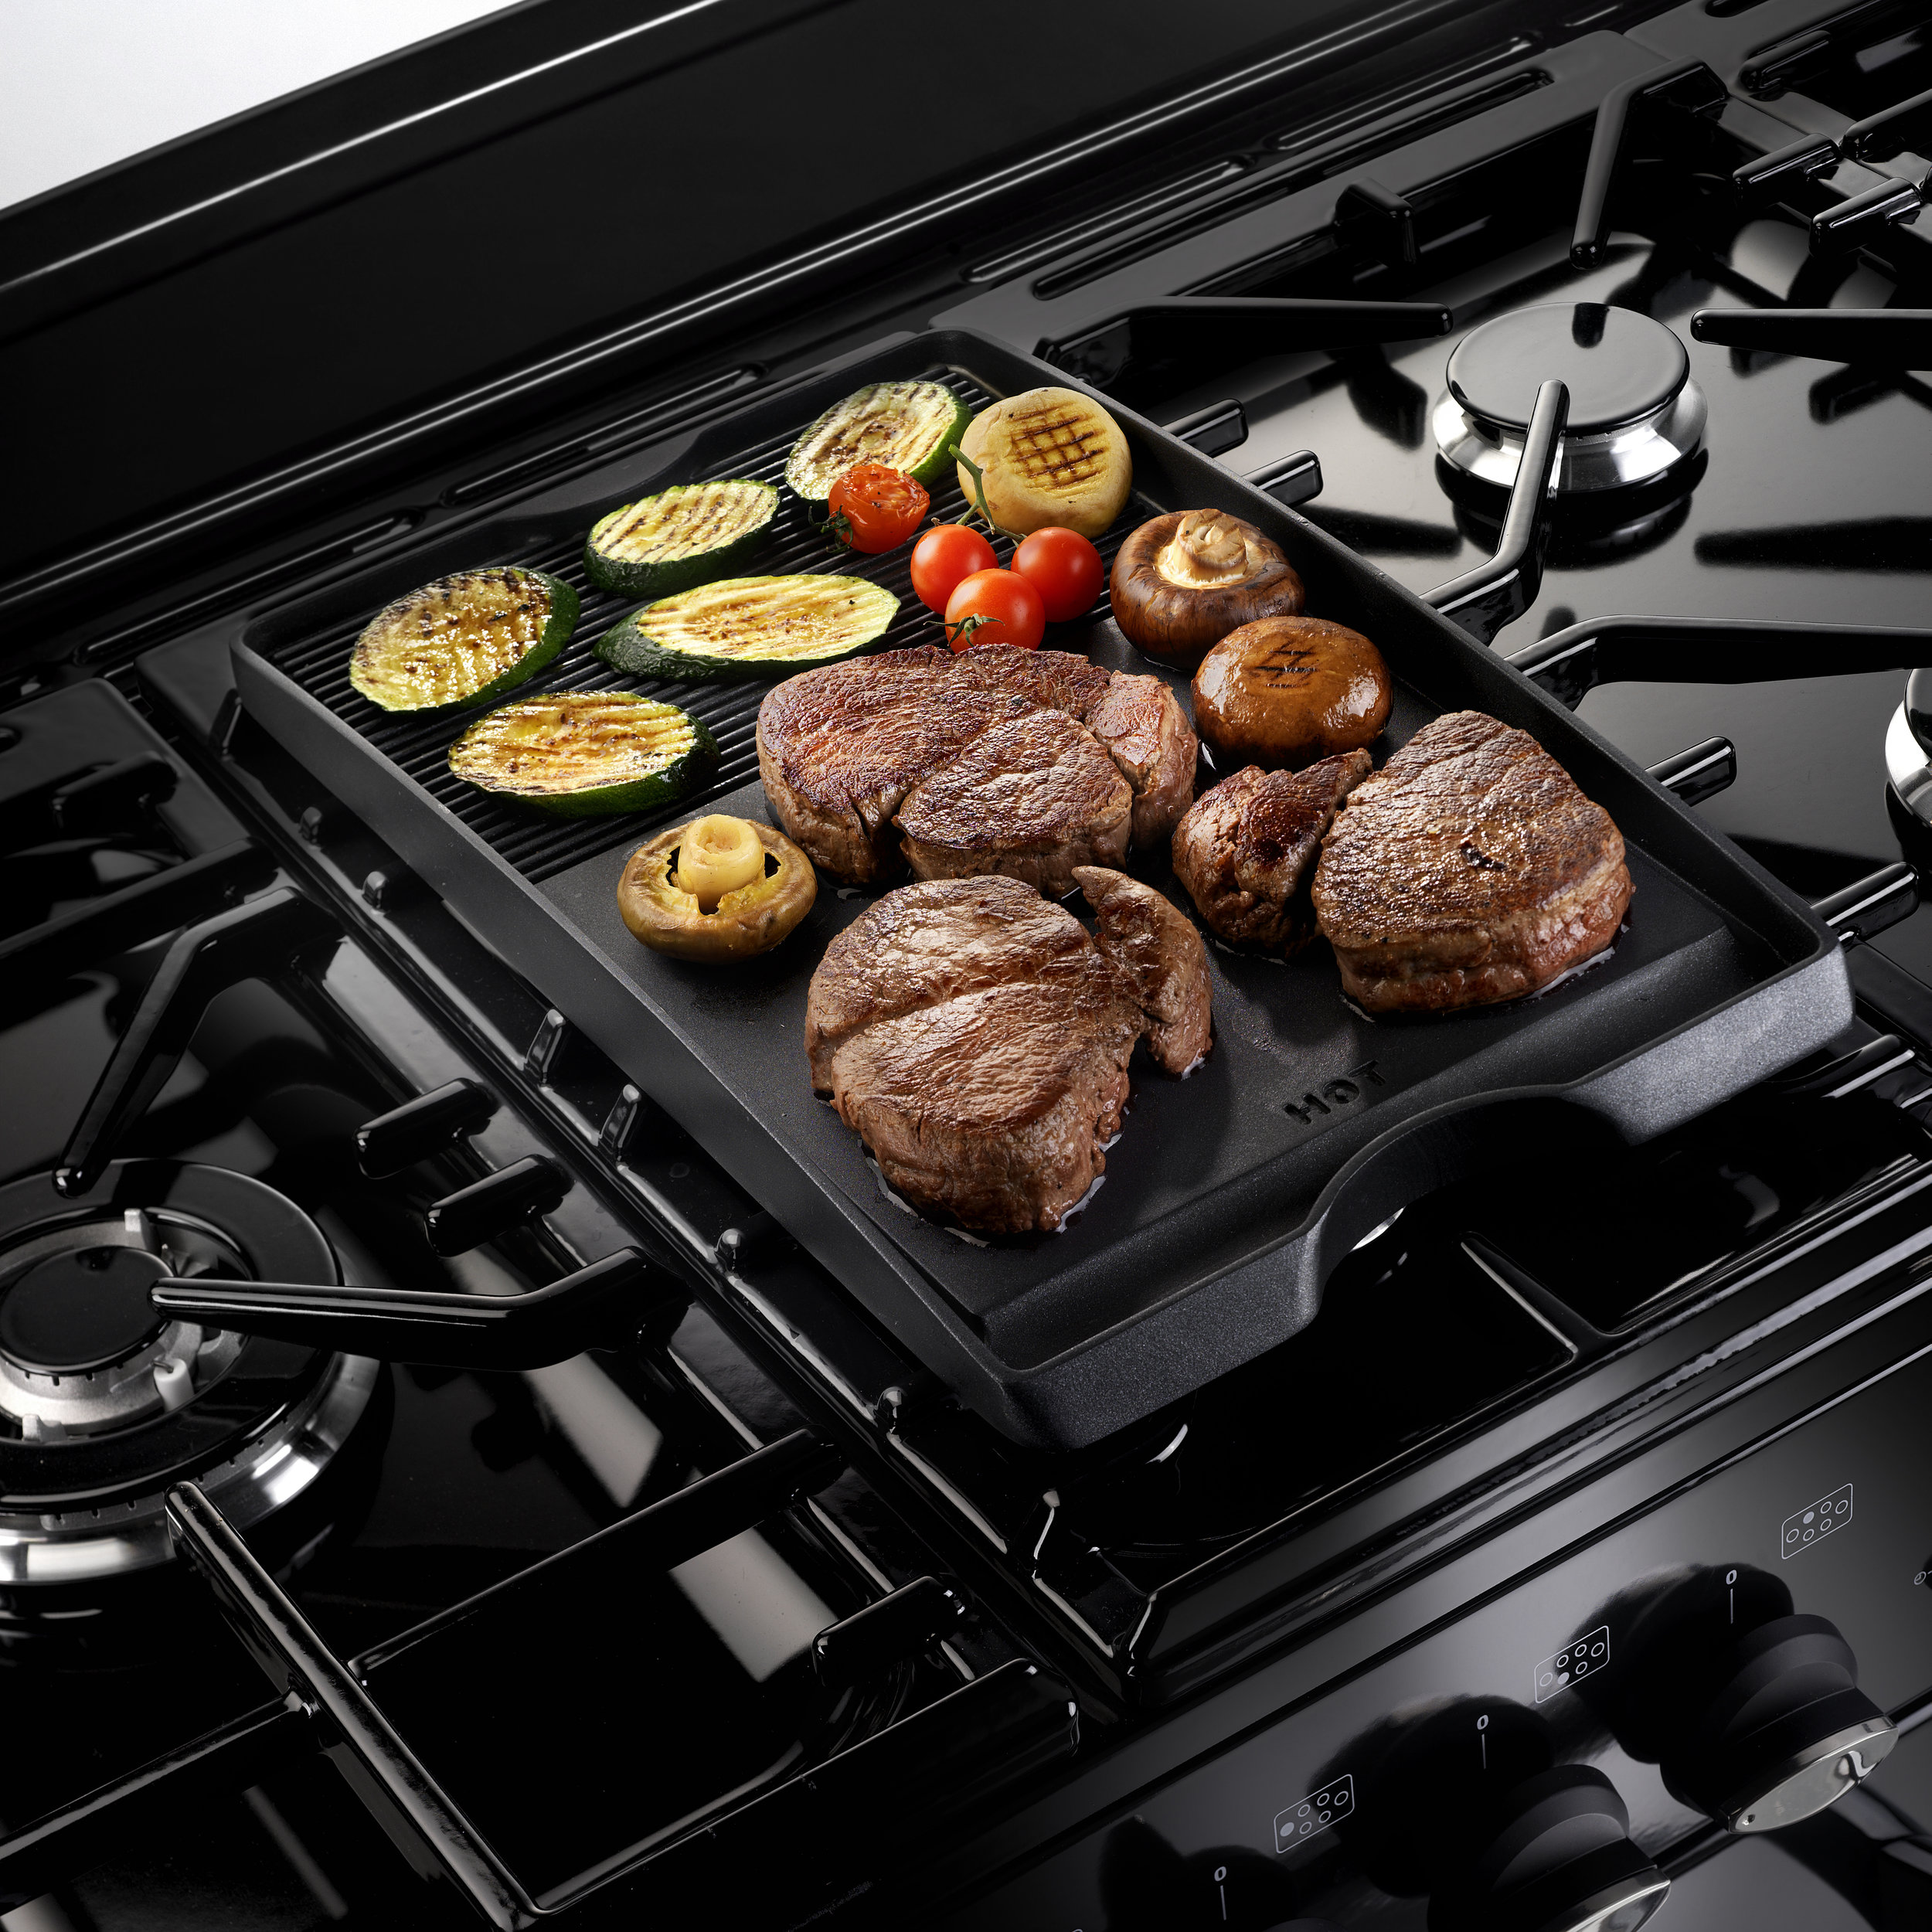 AGA_Masterchef 110_BLACK_Griddle_1.jpg